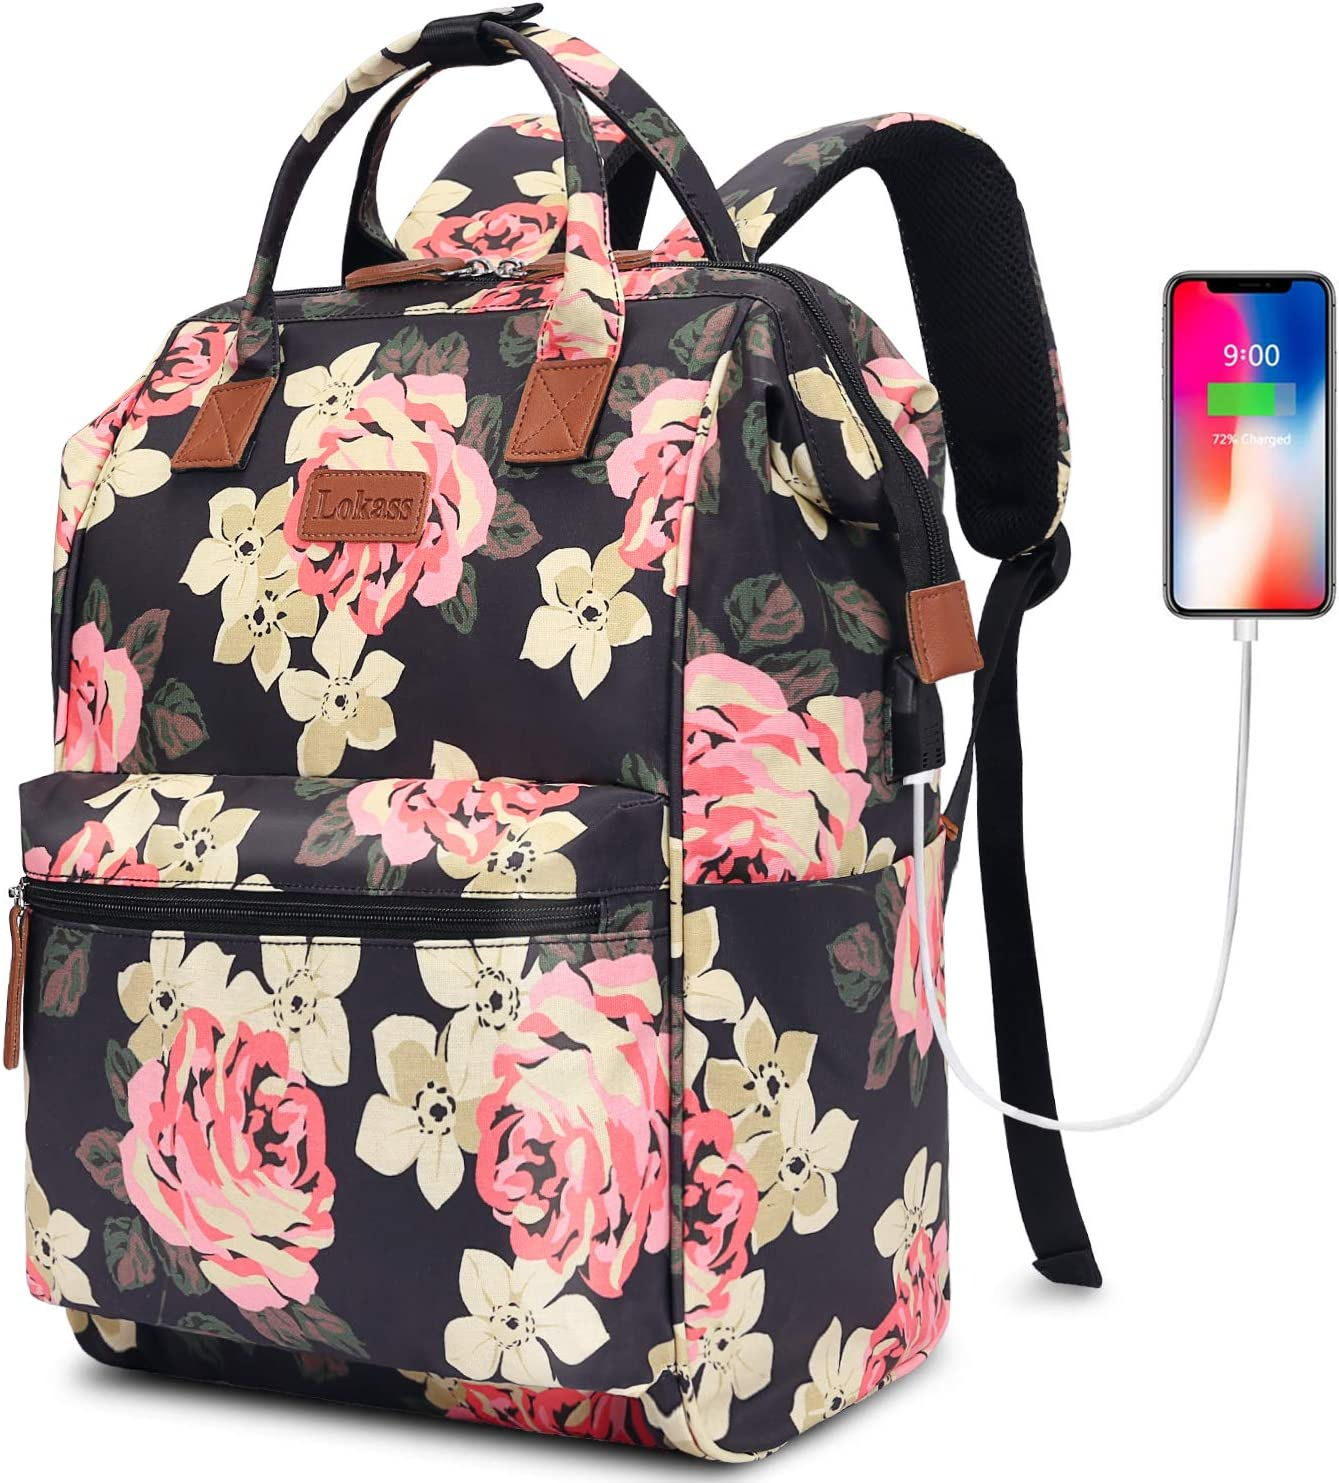 BRINCH Laptop Backpack 15.6 Inch Wide Open Computer Laptop Bag College Rucksack Water Resistant Business Travel Backpack Multipurpose Daypack with USB Charging Port for Women Girls,Peony-Dark Blue